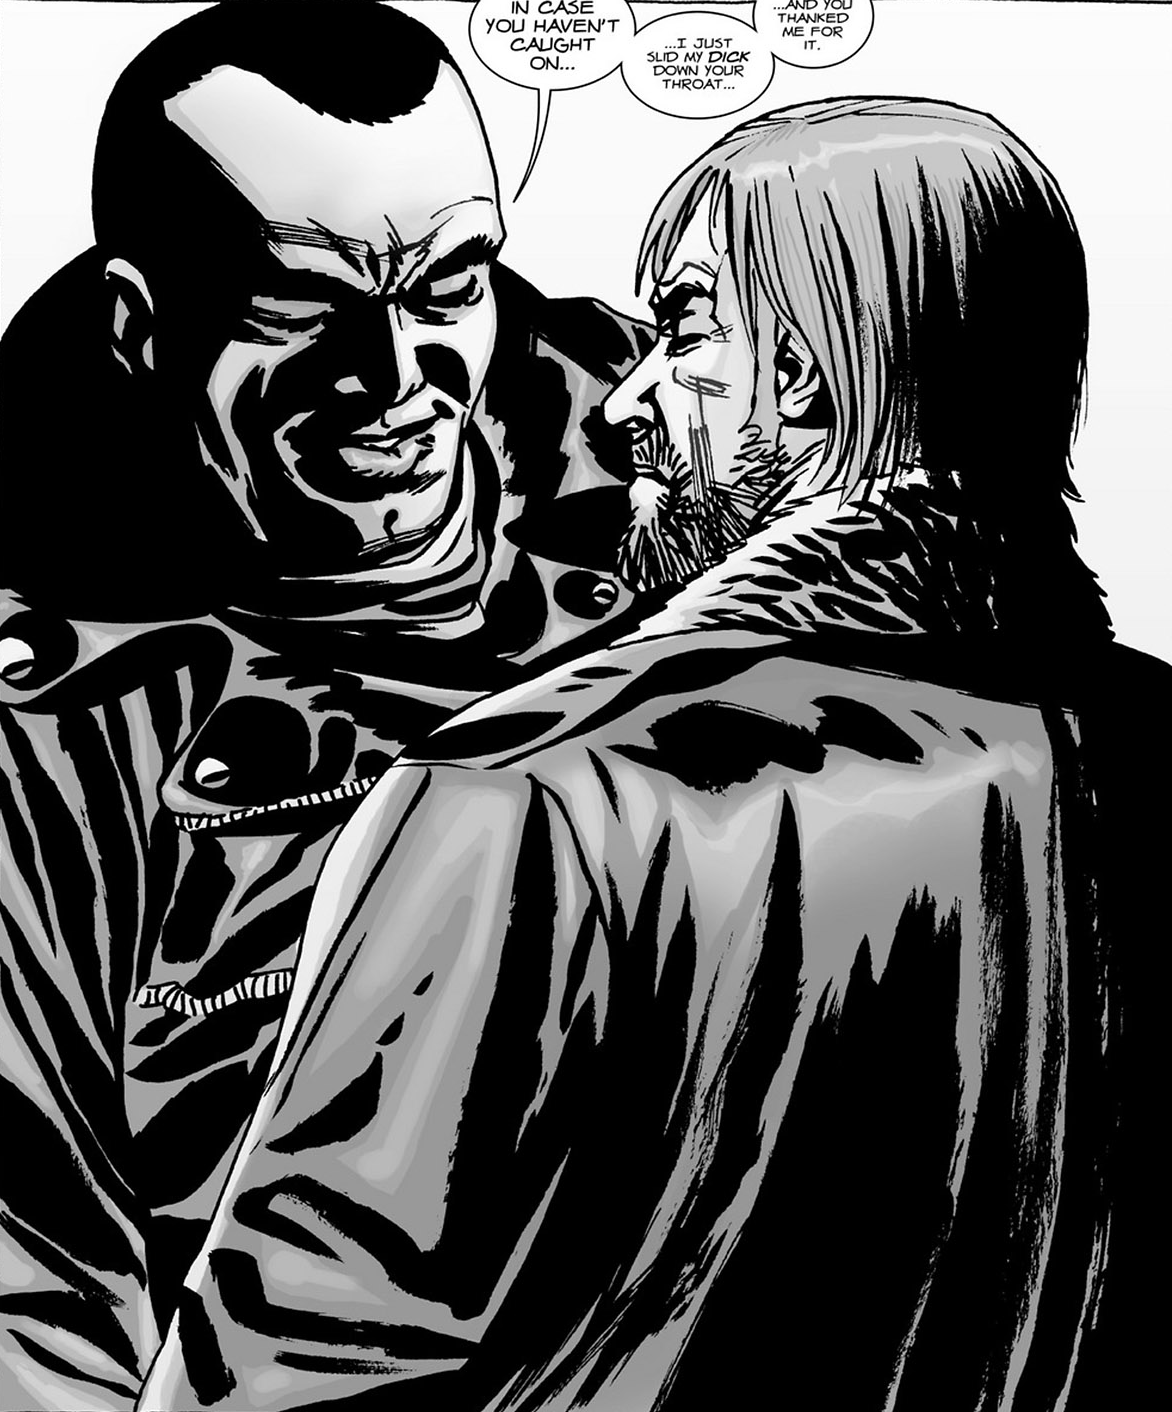 http://img2.wikia.nocookie.net/__cb20121018184150/walkingdead/images/0/0f/103.99.png